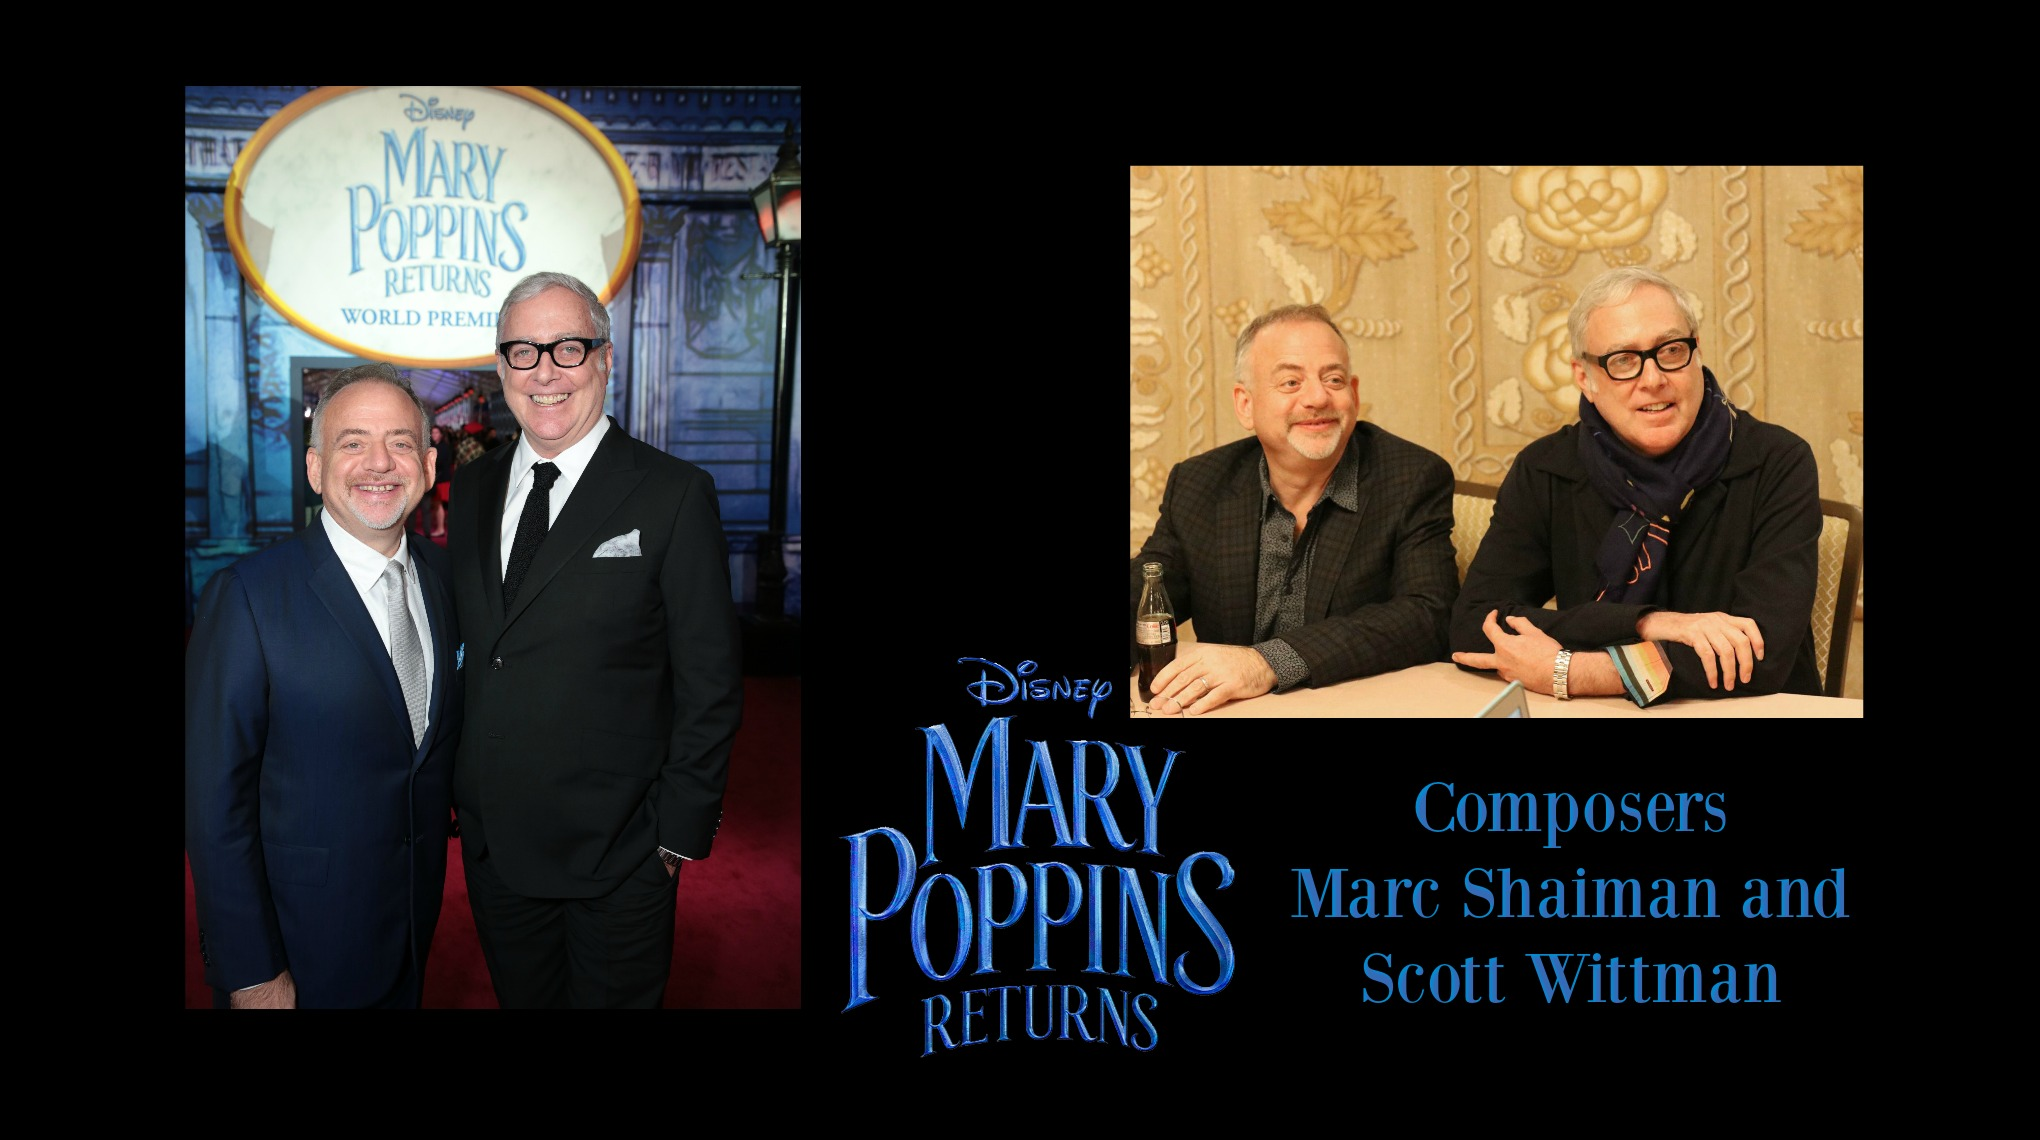 Composers Marc Shaiman and Scott Wittman